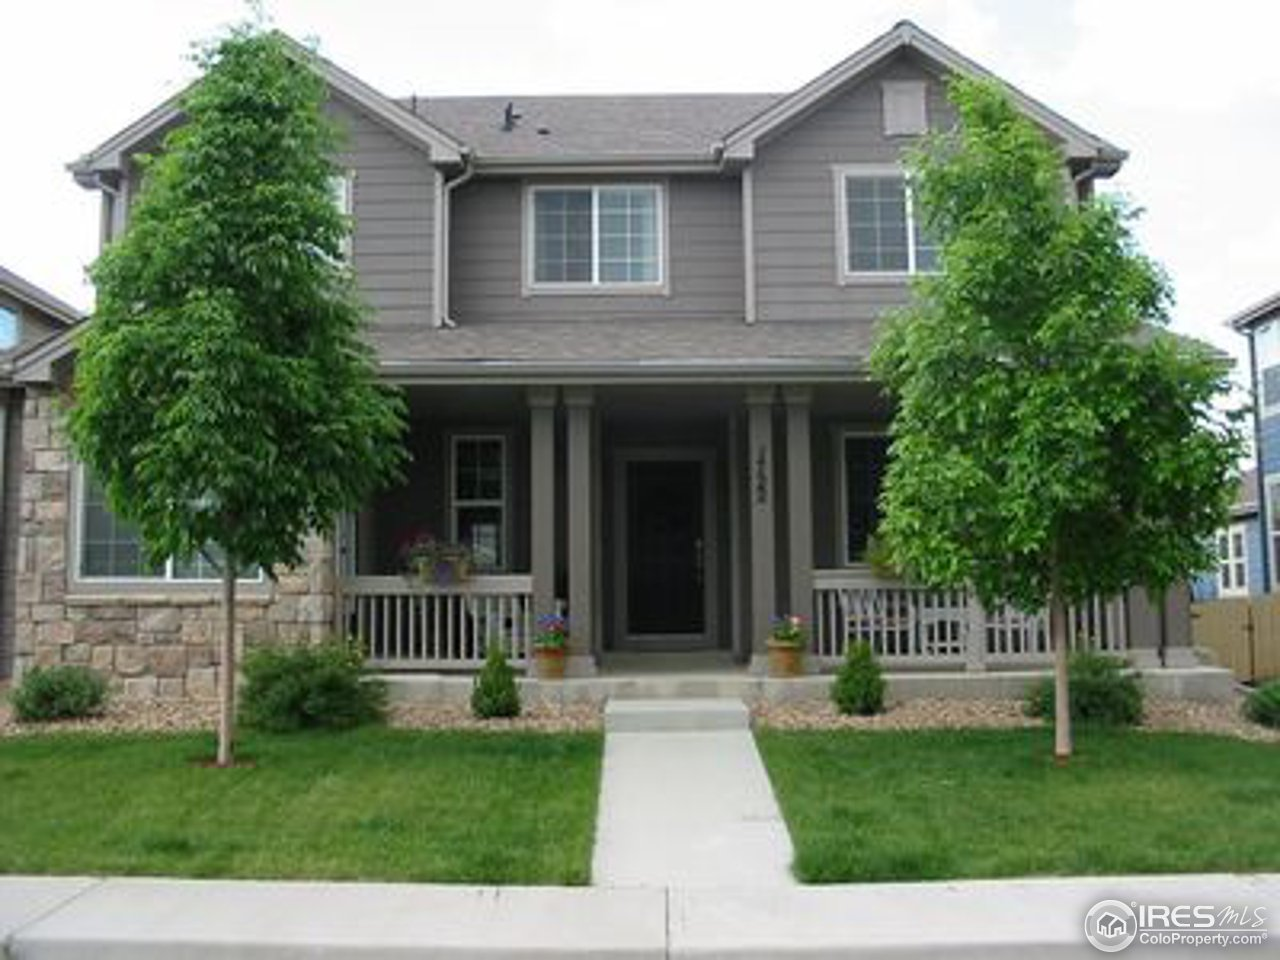 1722 Whitefeather Dr, Longmont CO 80504